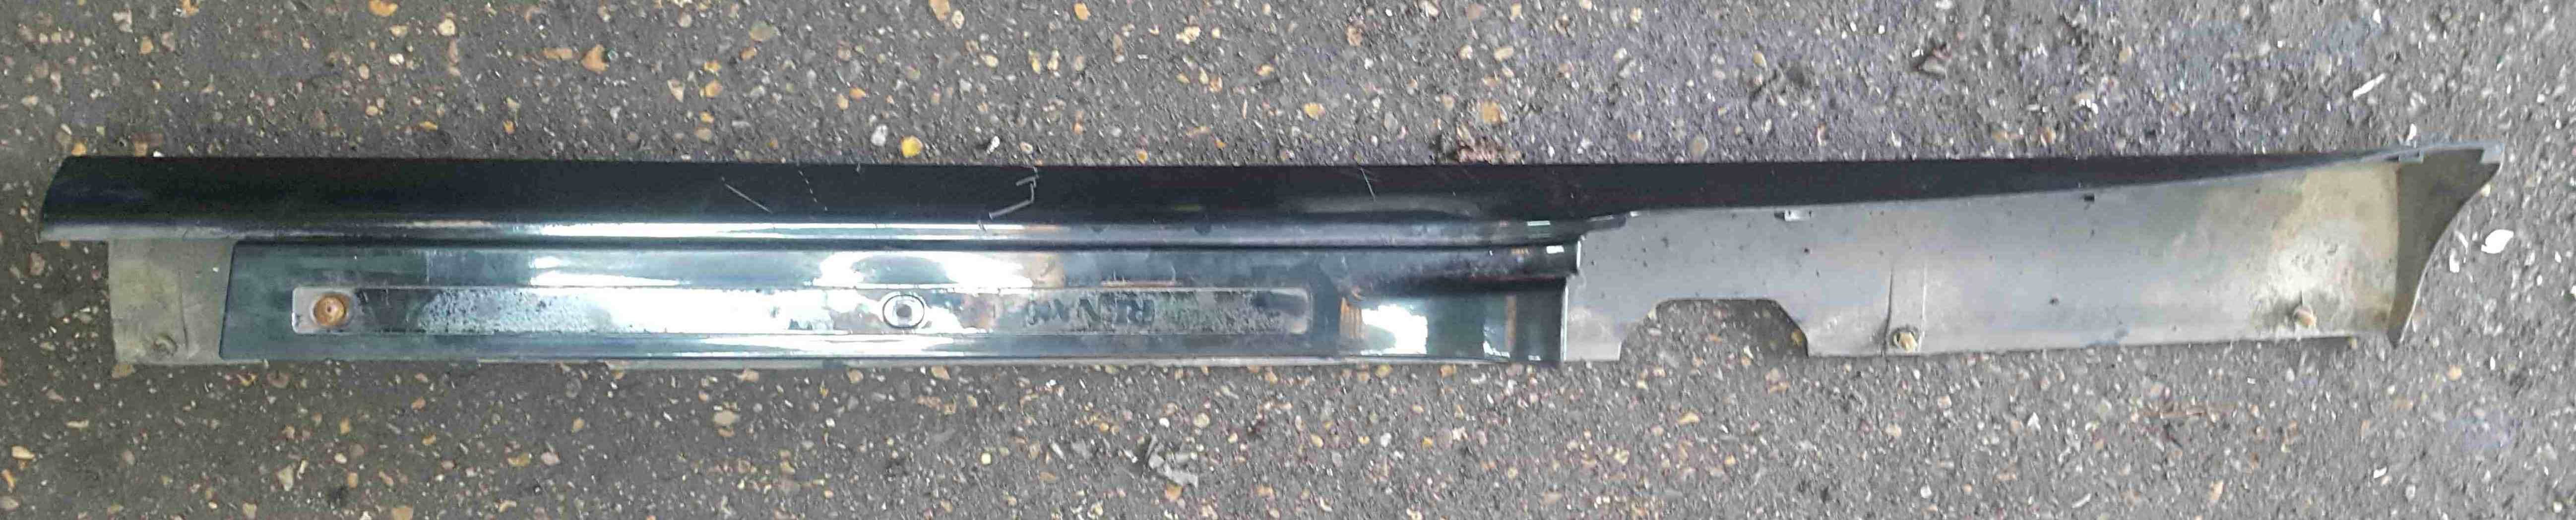 Renault Clio Sport MK3 2005-2009 197 Drivers OS Side Skirt Black TEGNA